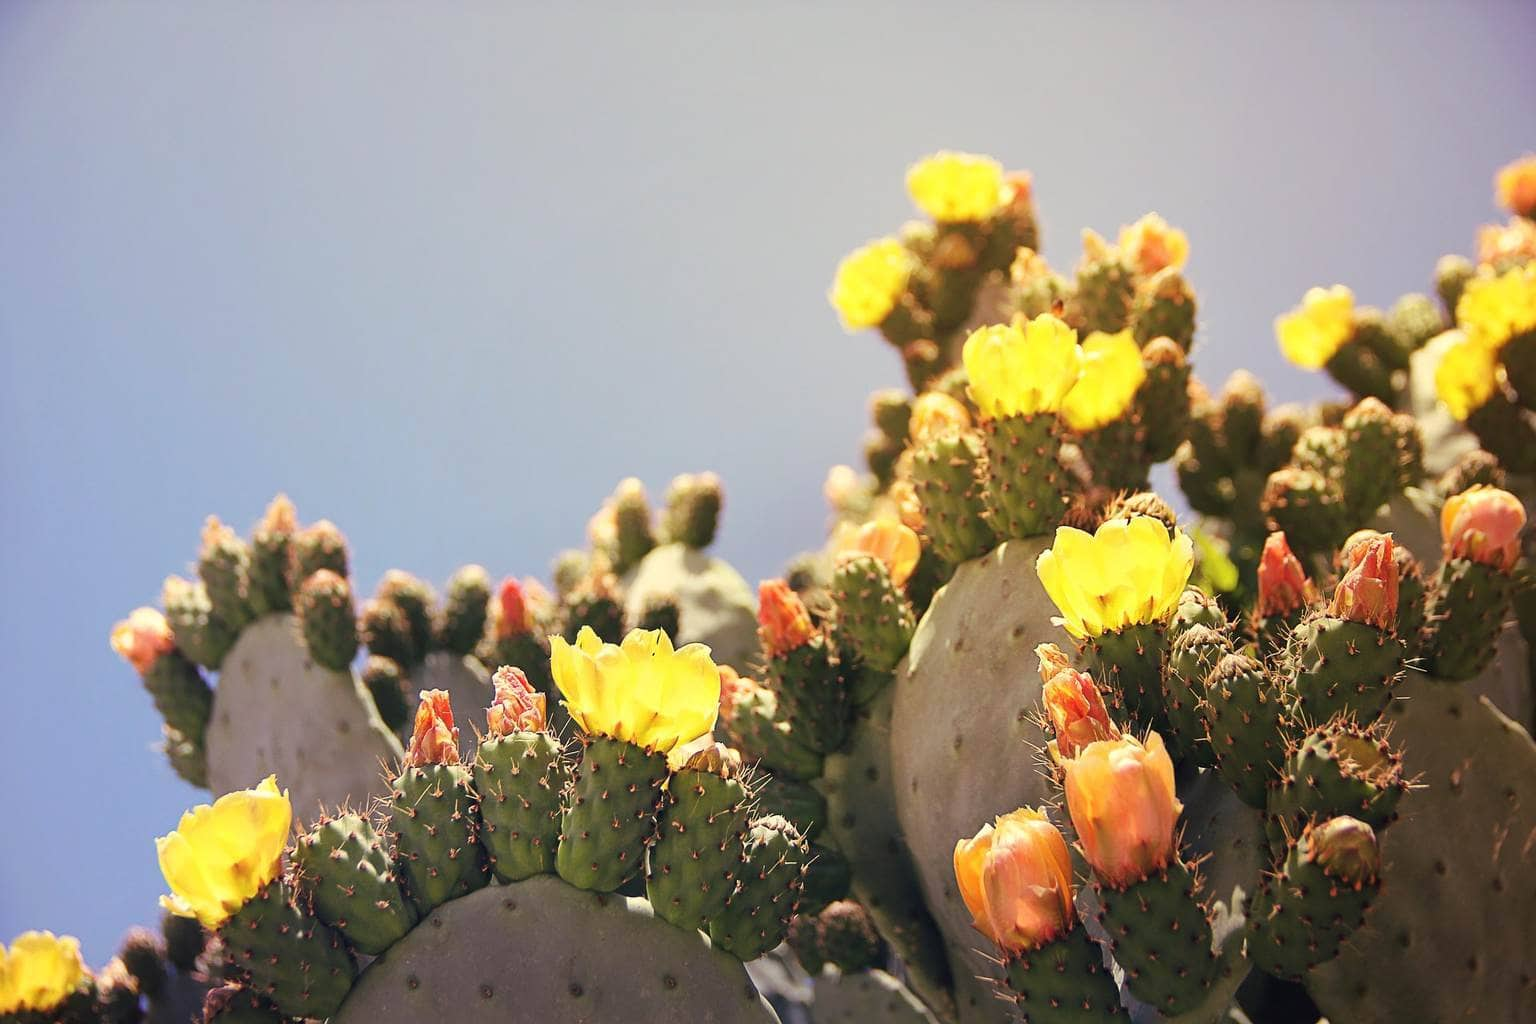 Nopal is a type of cactus